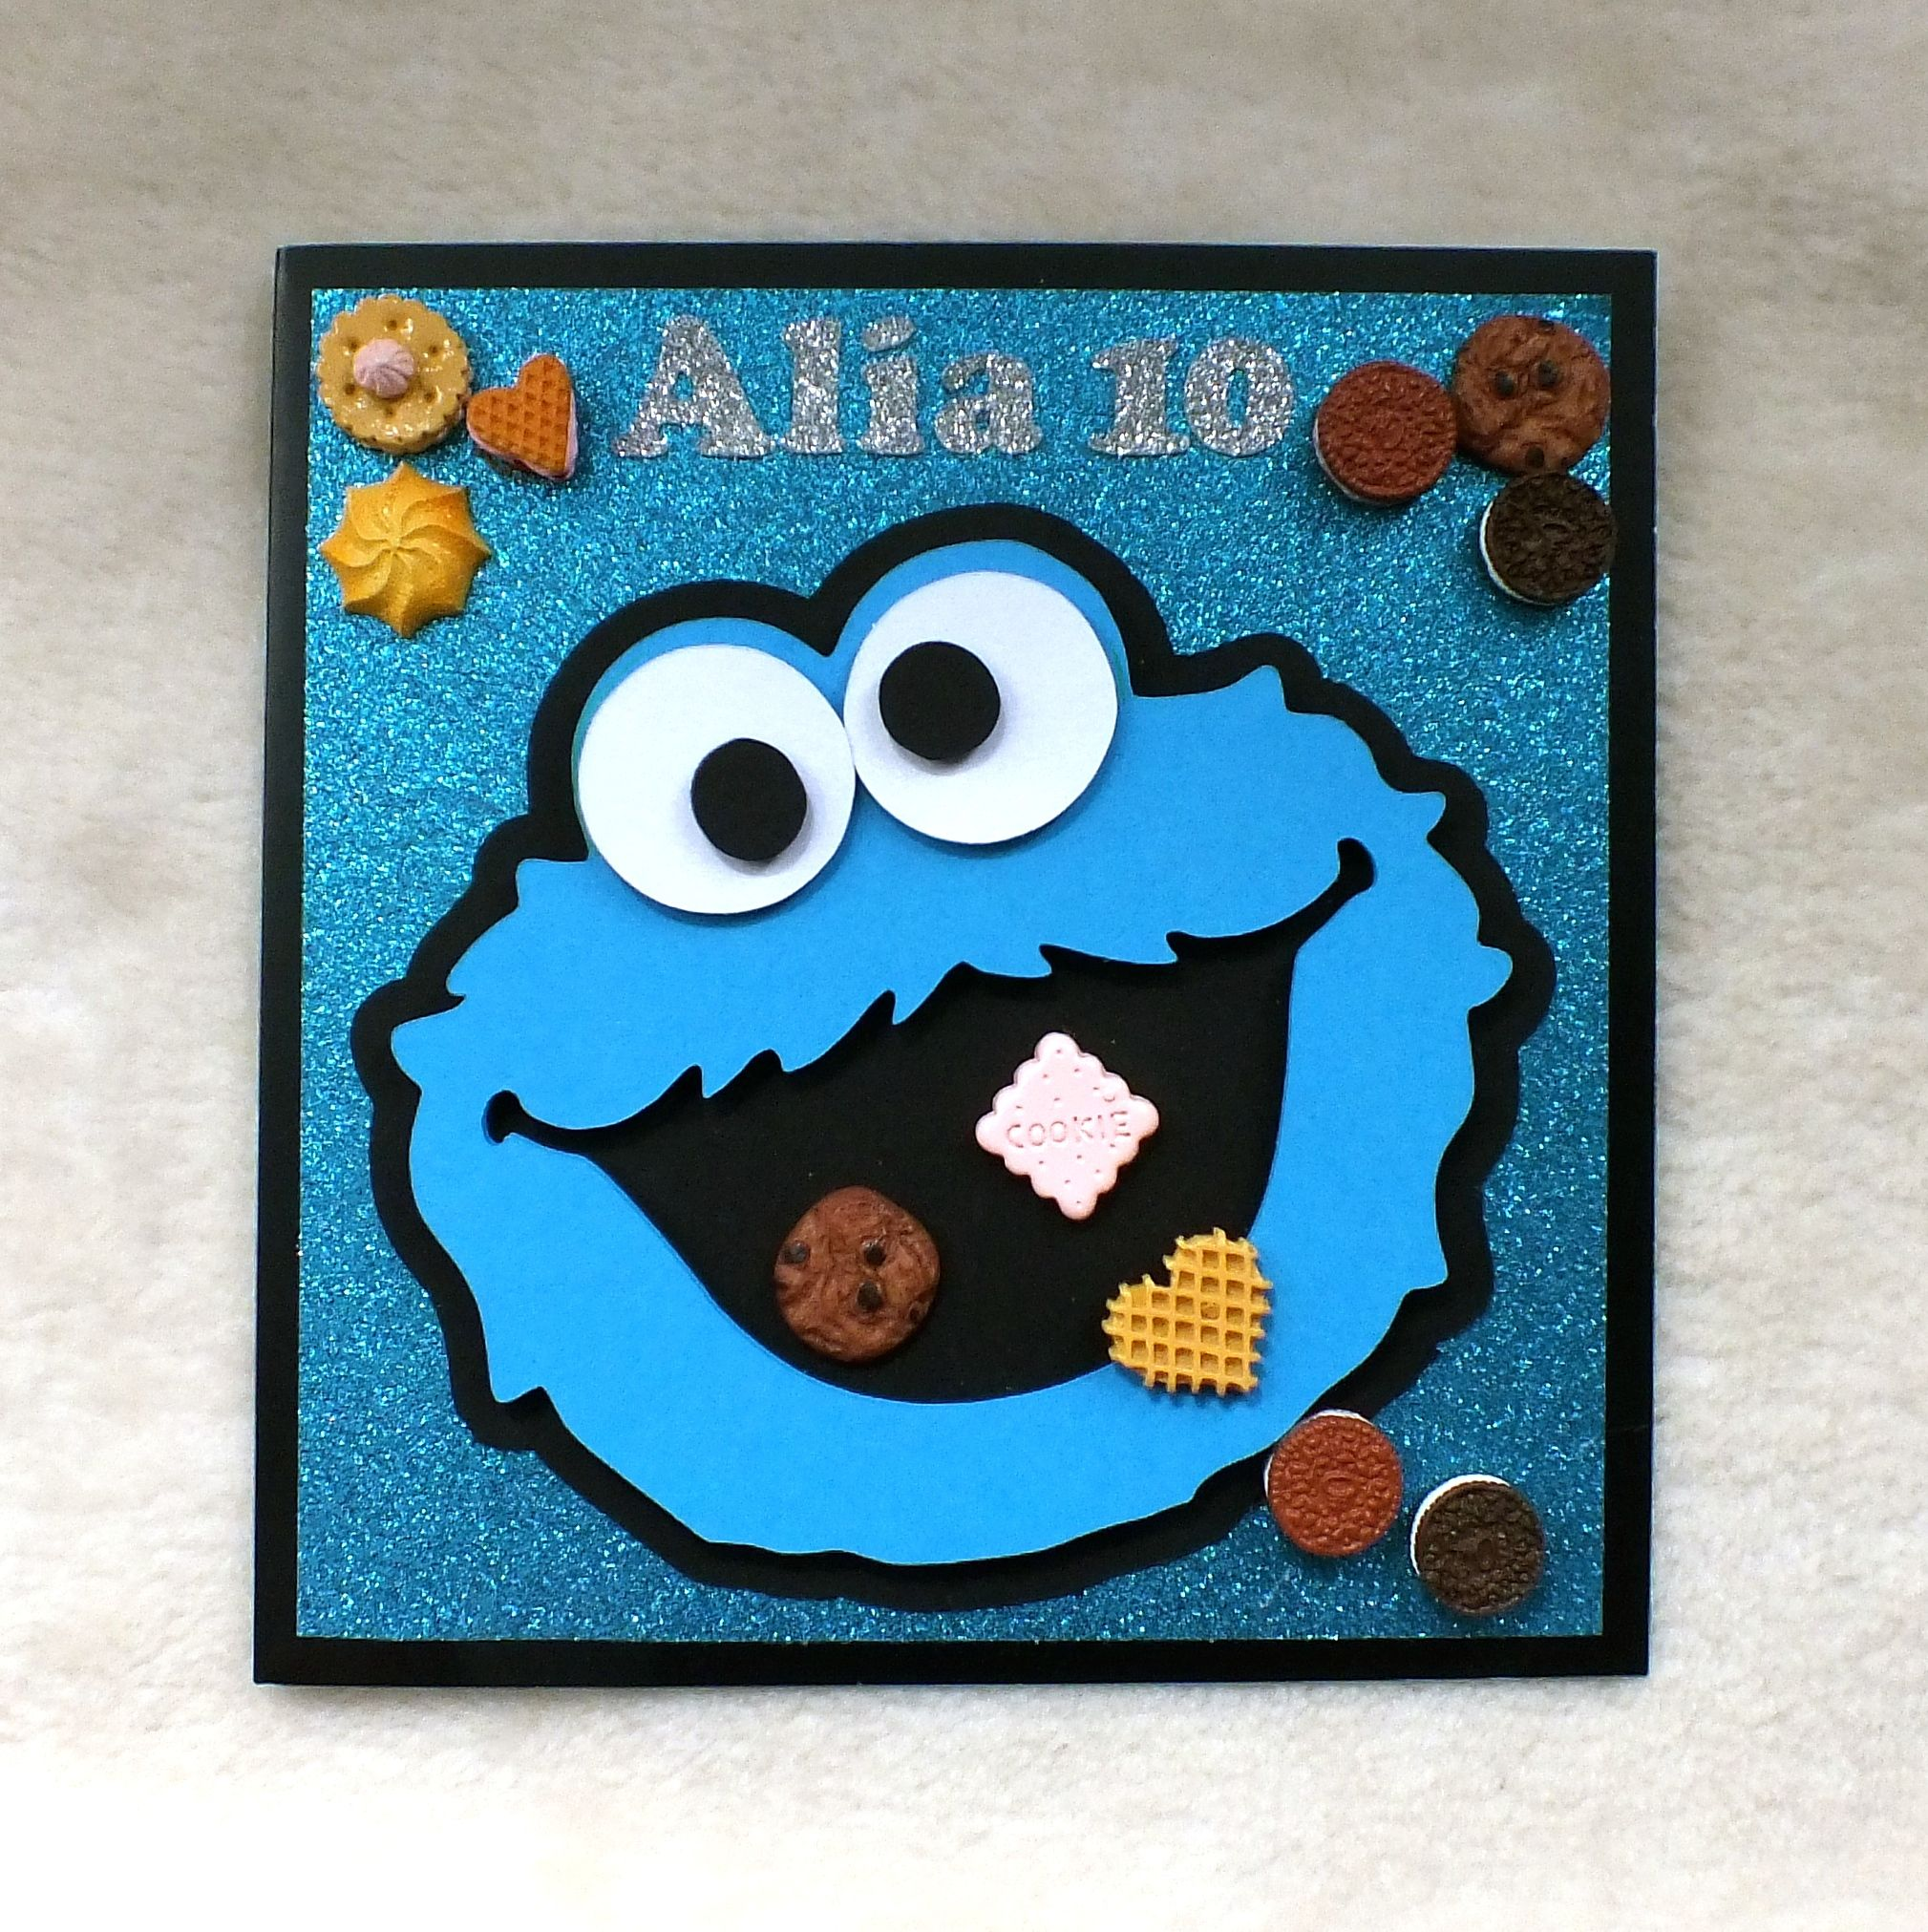 Cookie monster 10th birthday card handmade by mandishella cards cookie monster 10th birthday card handmade by mandishella bookmarktalkfo Choice Image